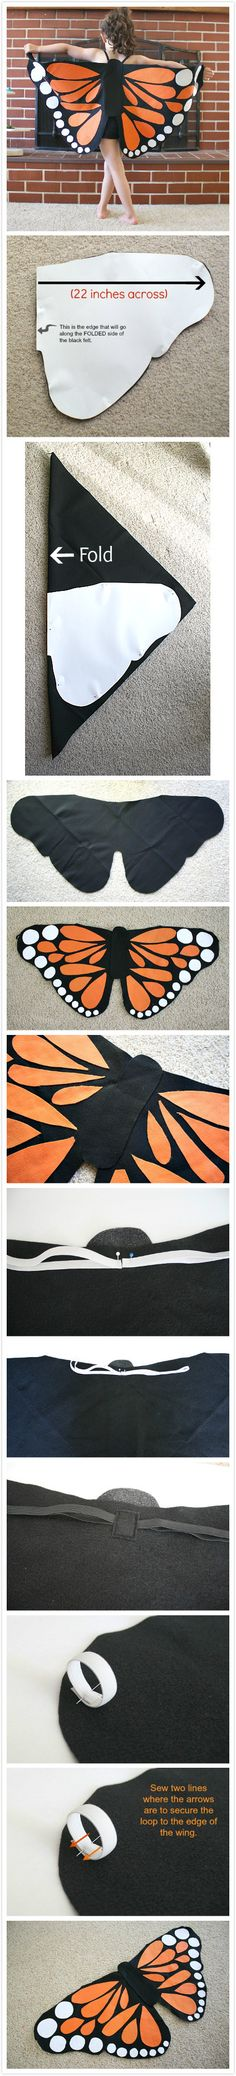 Monarch Butterfly Wings Tutorial Think I can up the size and have my Halloween costume! Sewing Hacks, Sewing Crafts, Sewing Projects, Diy Crafts, Sewing For Kids, Diy For Kids, Diy Costumes, Halloween Costumes, Couple Costumes